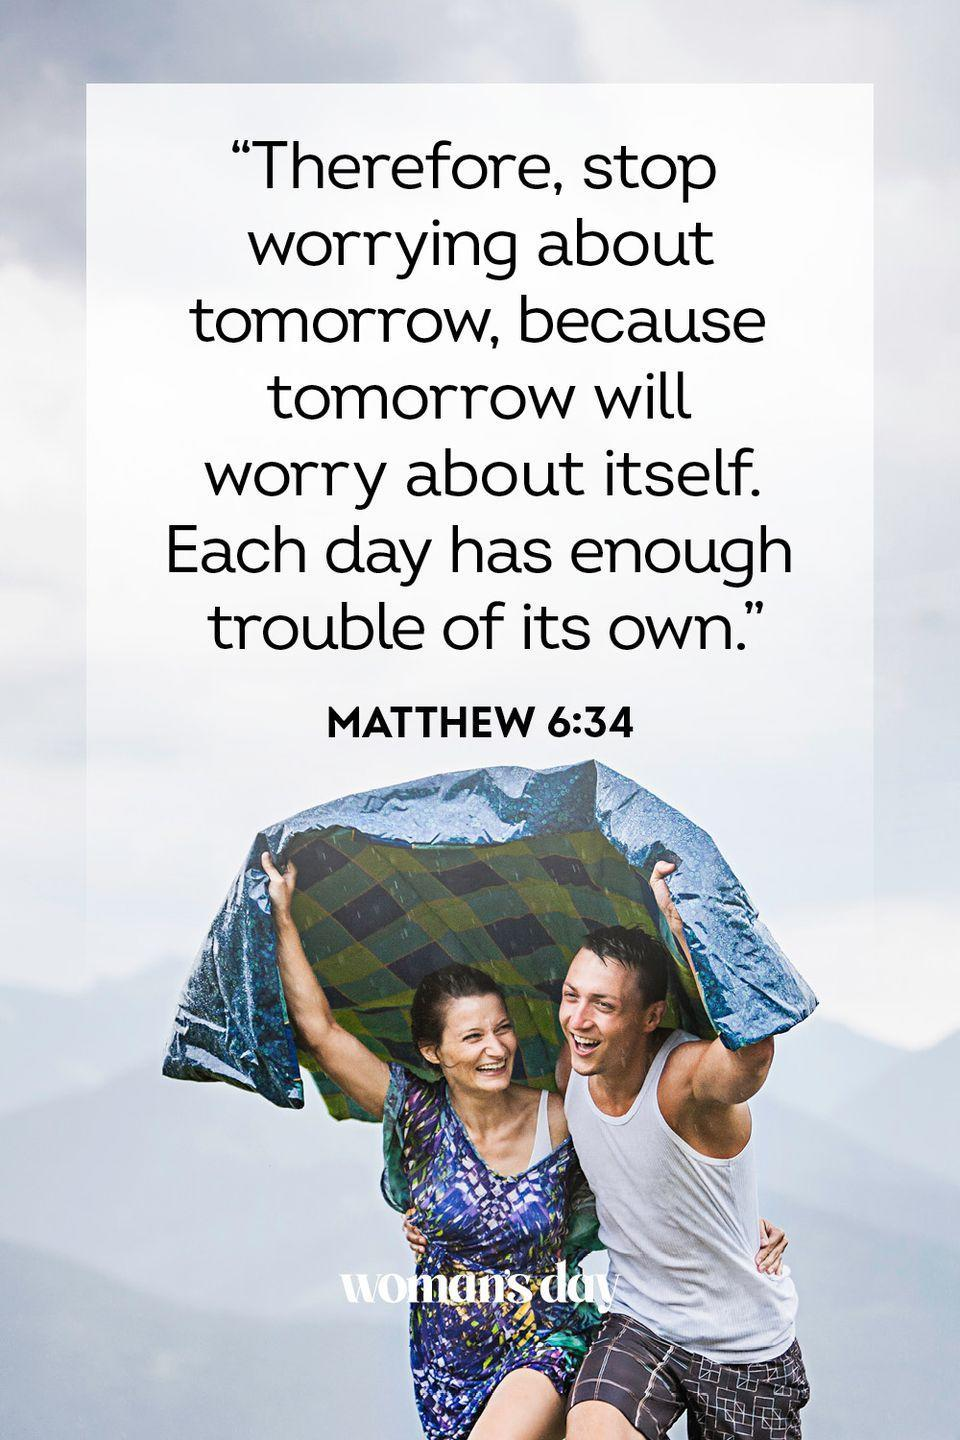 """<p>""""Therefore, stop worrying about tomorrow, because tomorrow will worry about itself. Each day has enough trouble of its own."""" </p><p><strong>The Good News: </strong>When you're in a tough time, it can be hard to see beyond that. But you should try to focus on the positive things around you, to help you see that your troubles are not all-consuming.</p>"""